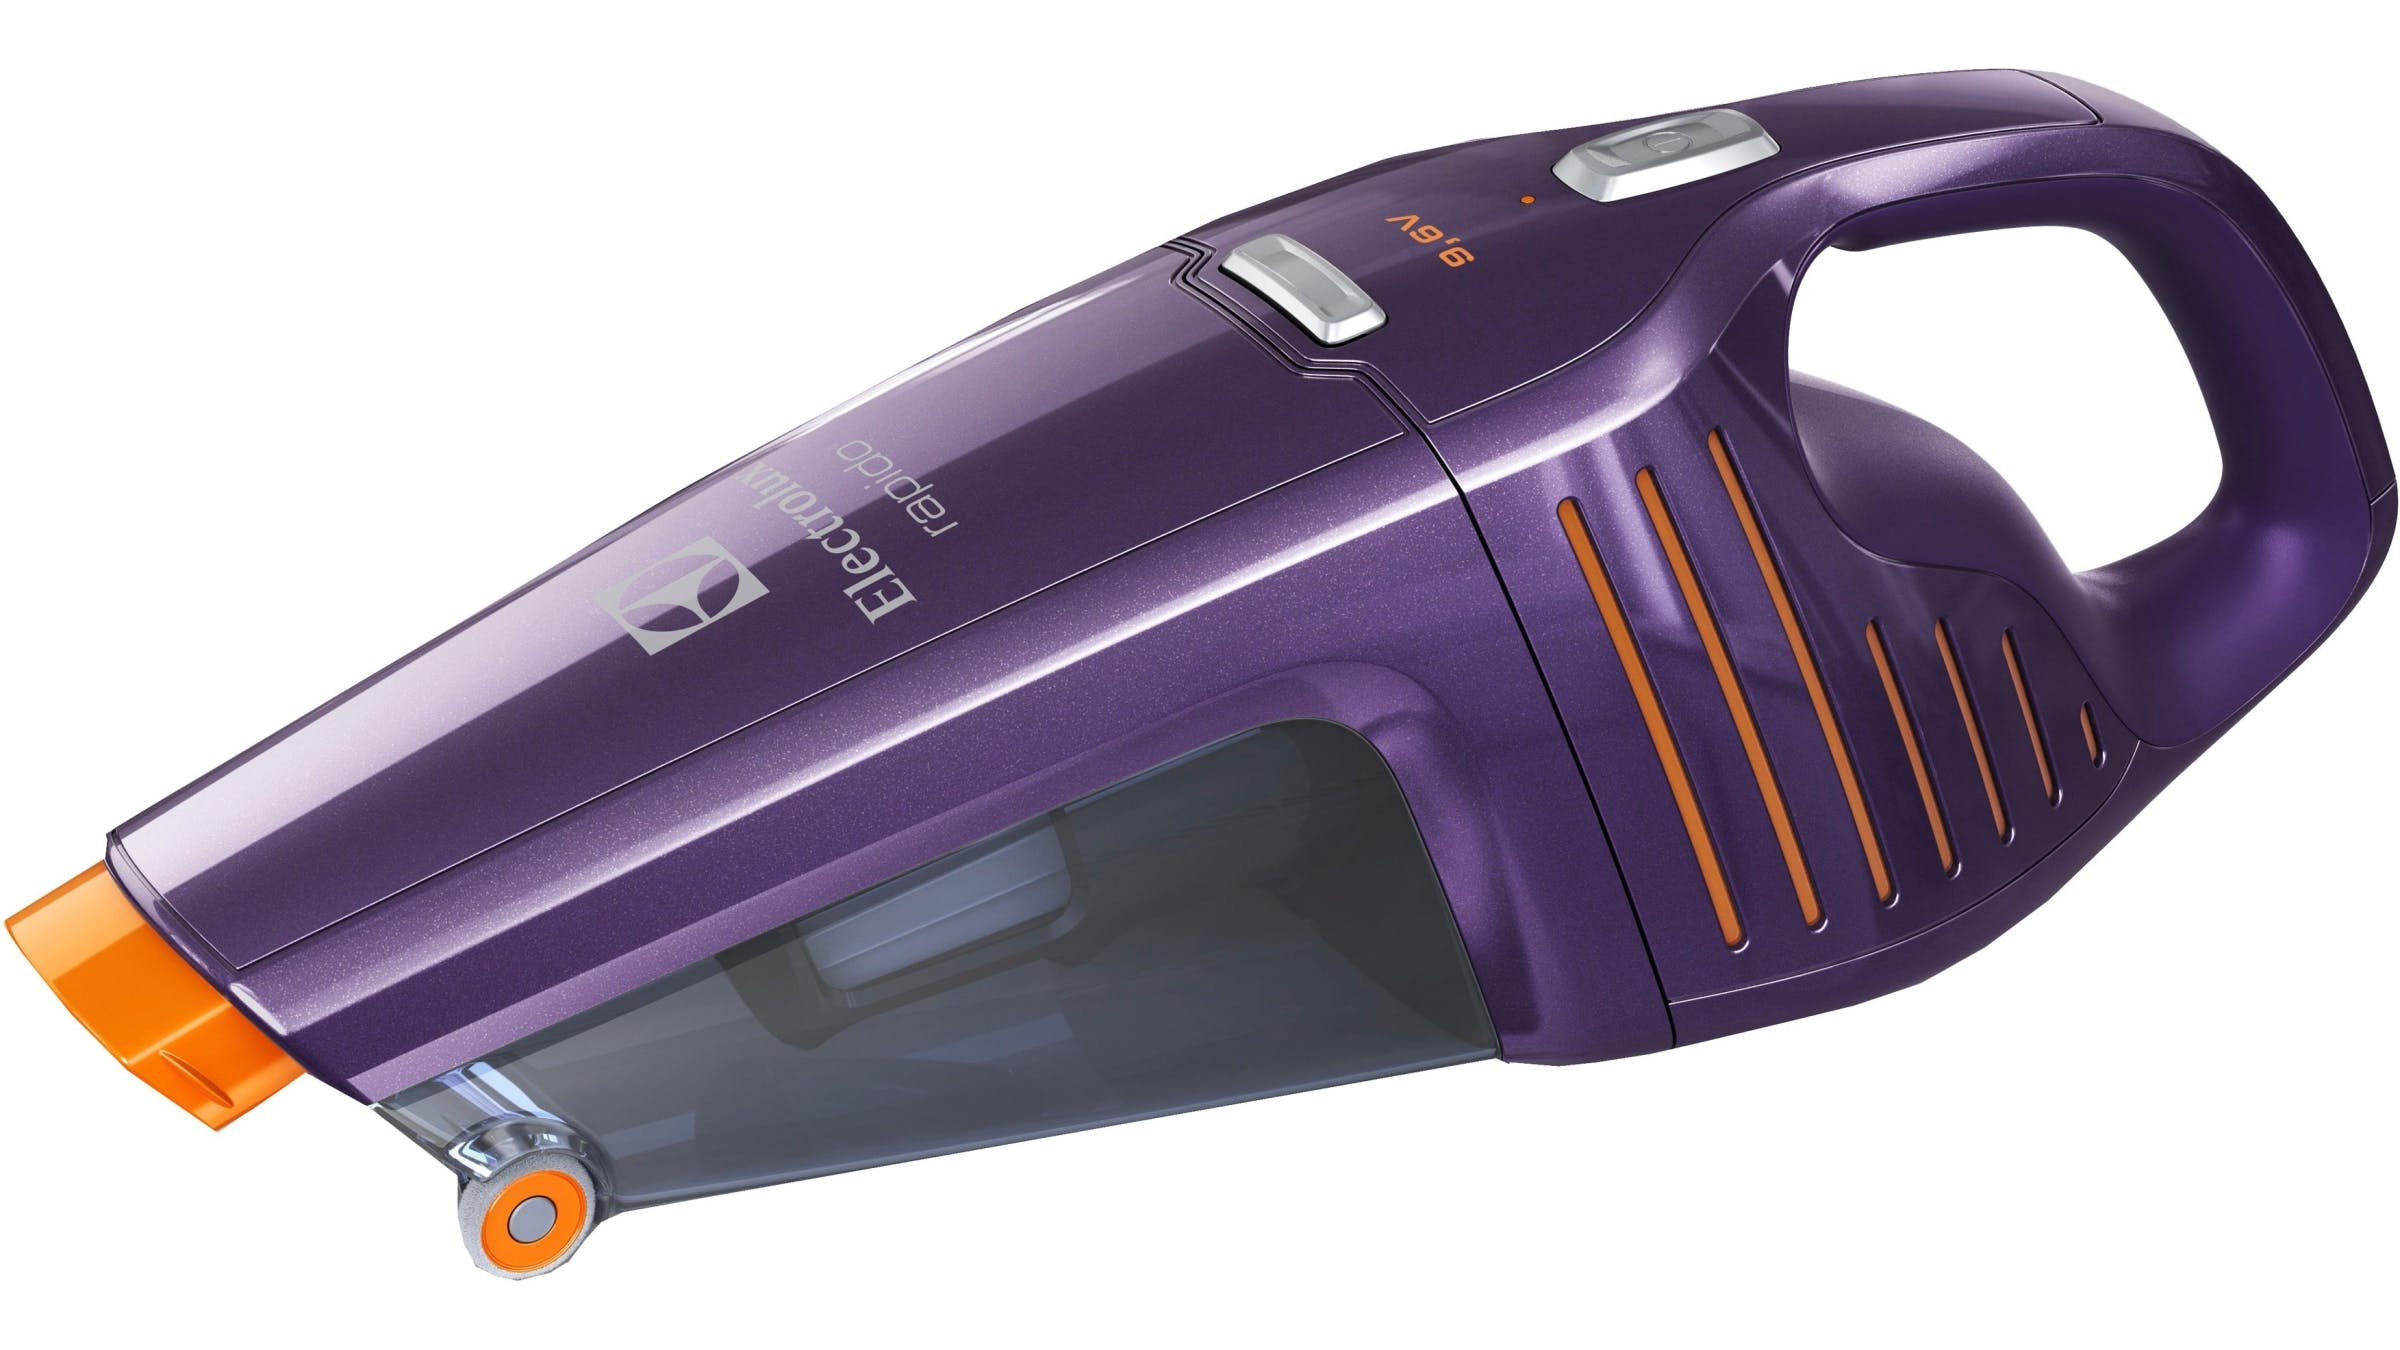 electrolux rapido handheld vacuum cleaner purple. Black Bedroom Furniture Sets. Home Design Ideas